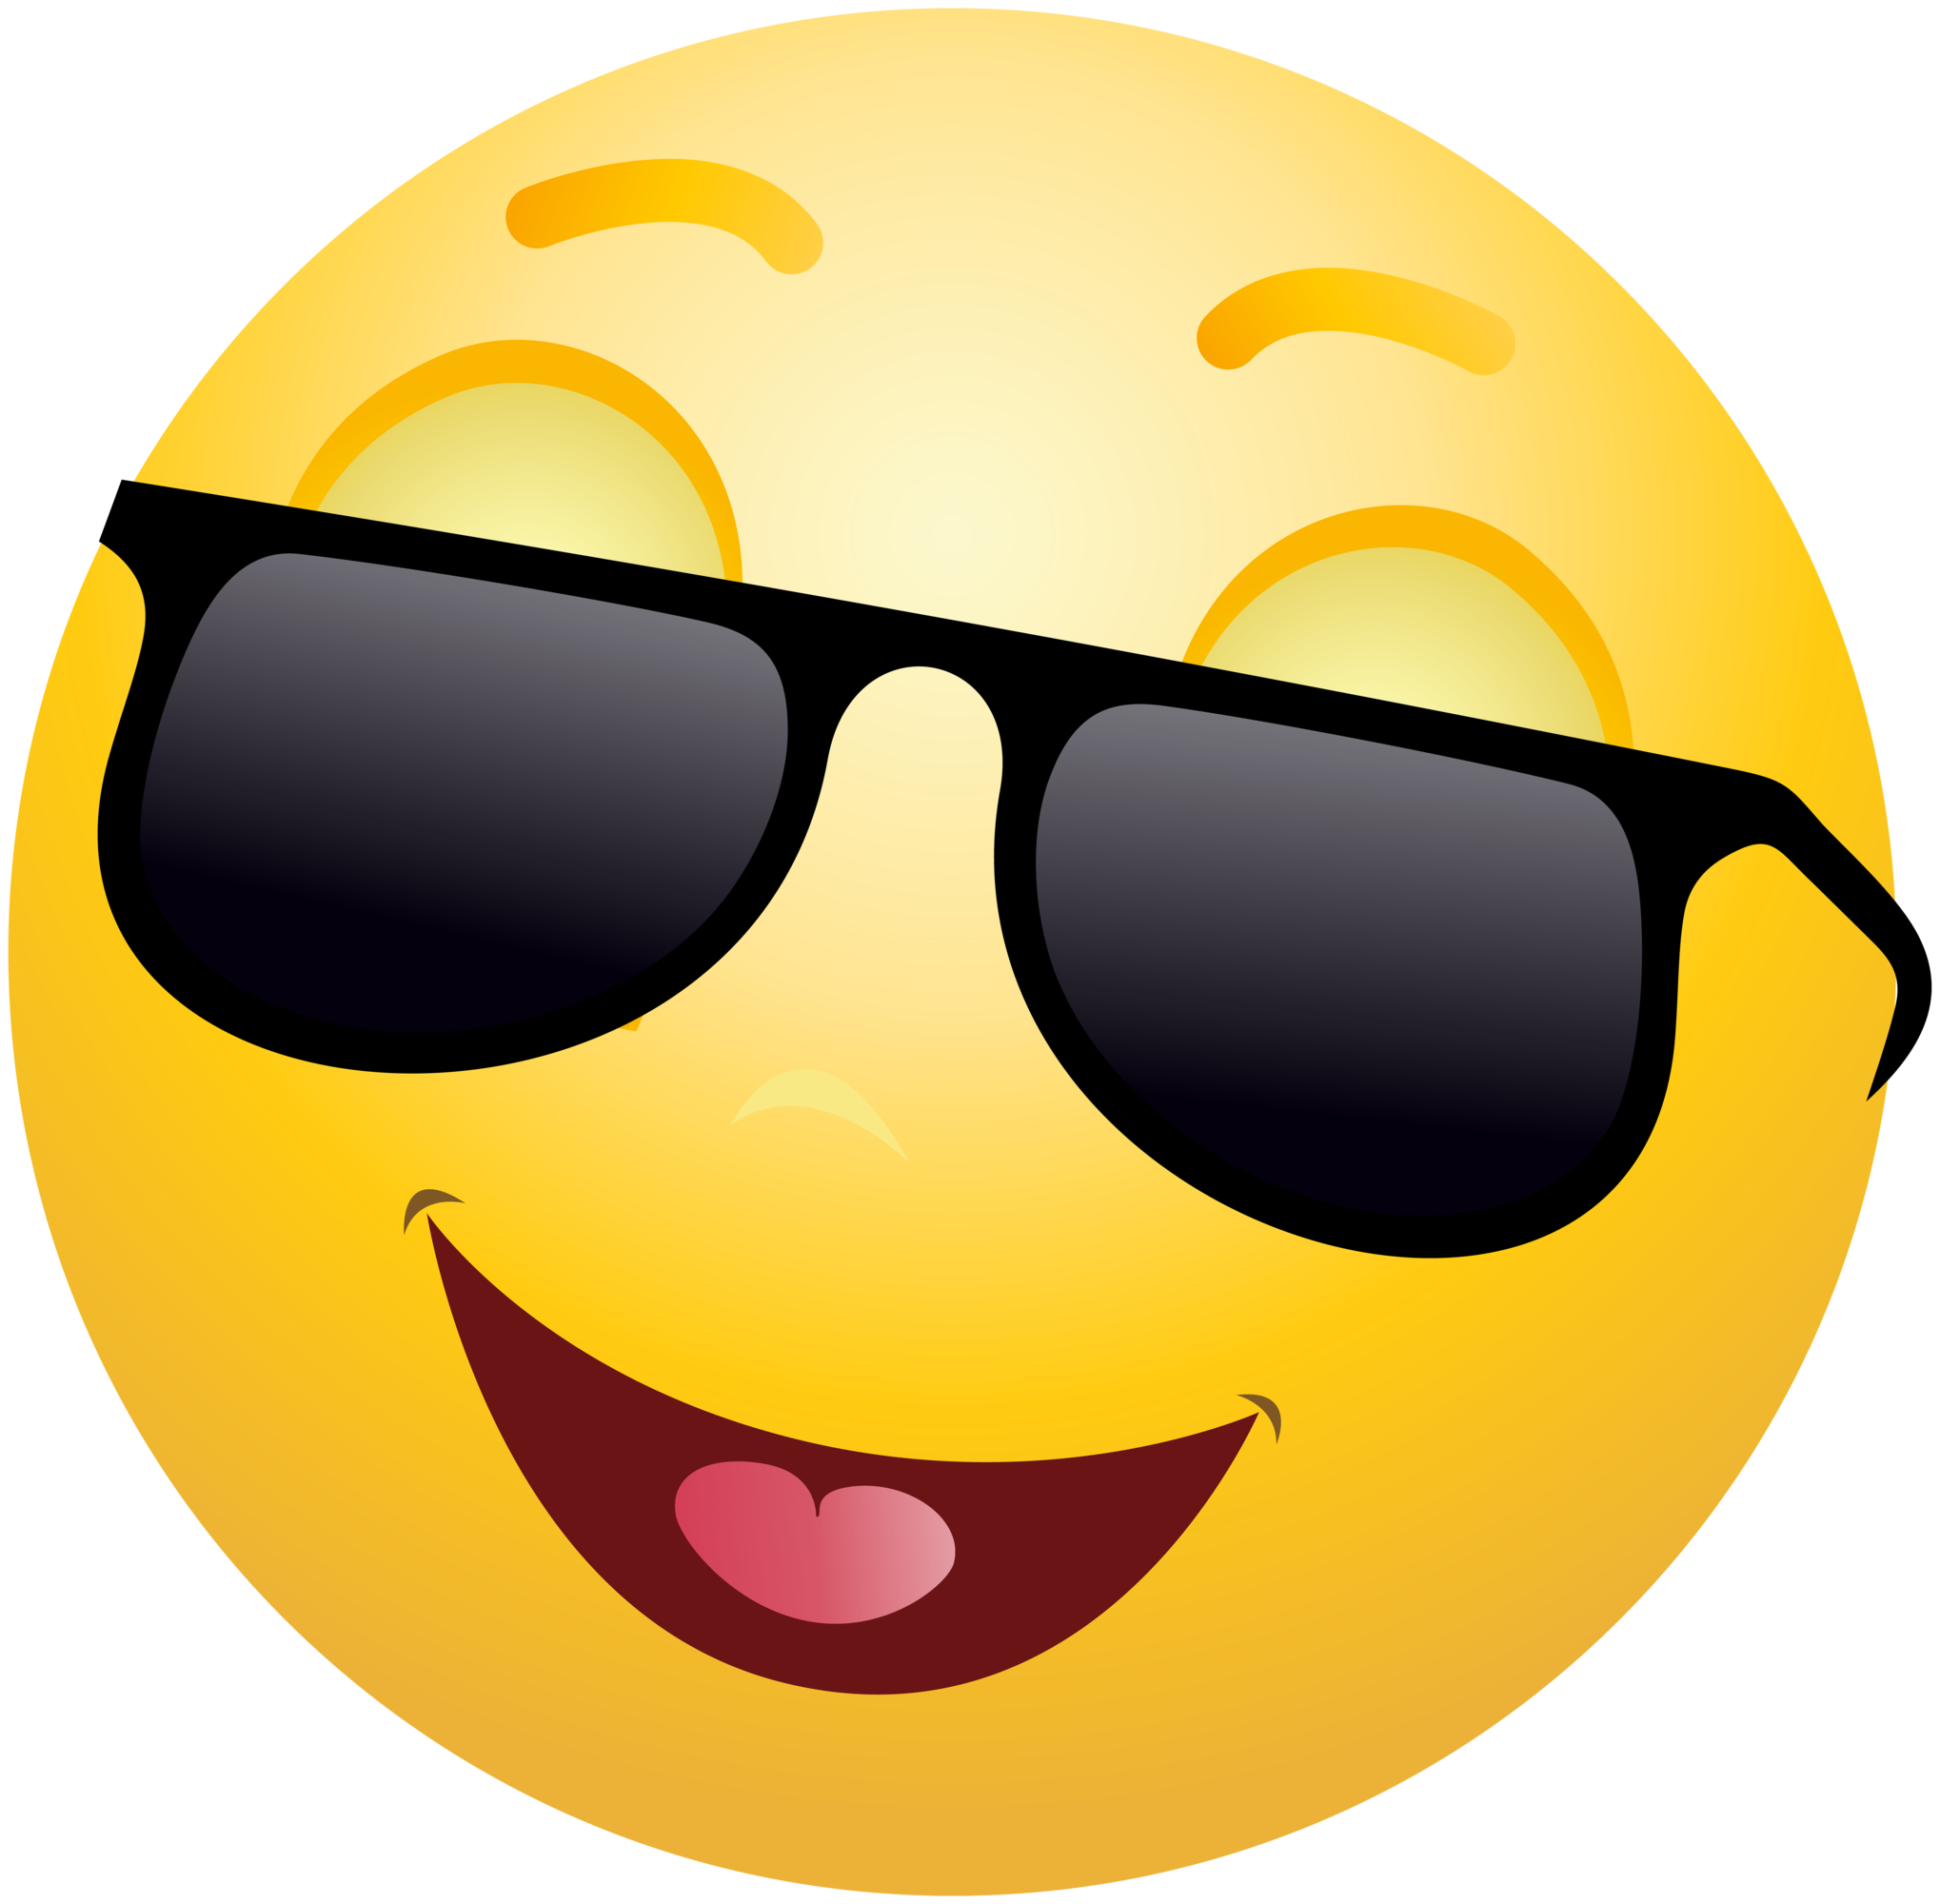 banner library Smile face png image. Handcuffs clipart emoji